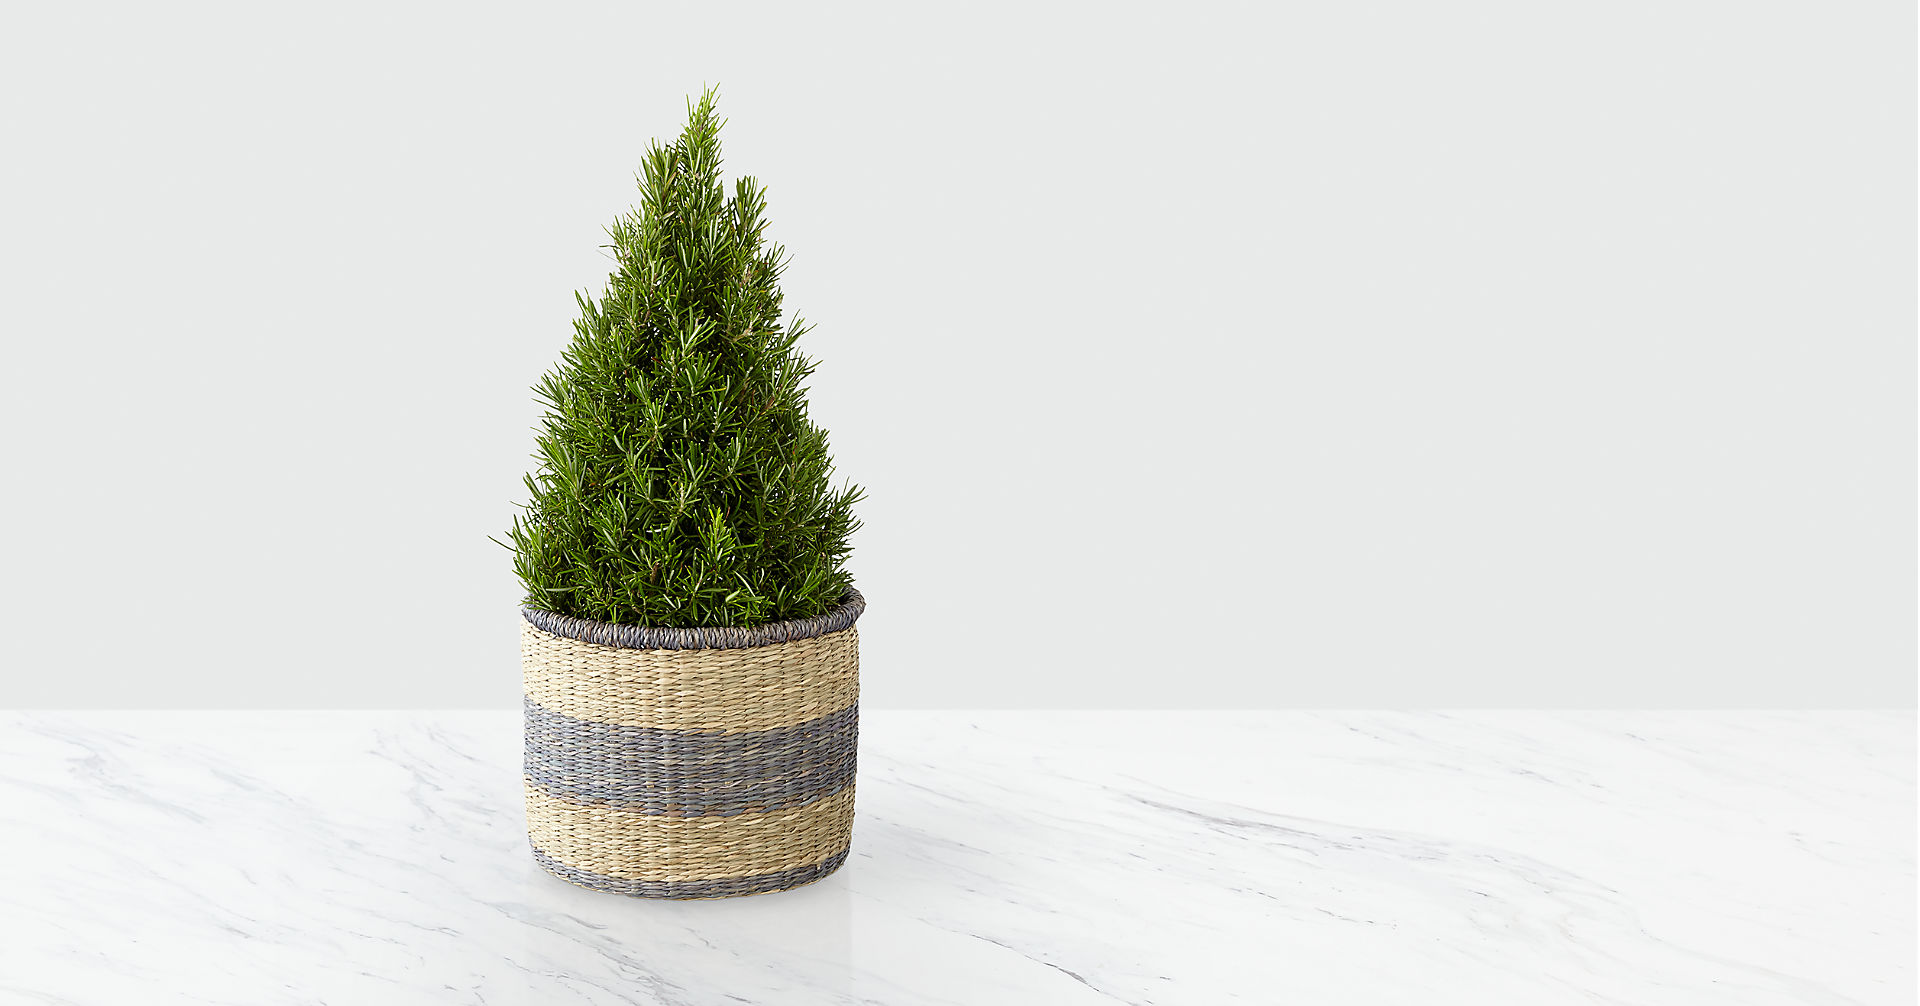 Fall Fresh Rosemary Tree - Image 1 Of 2